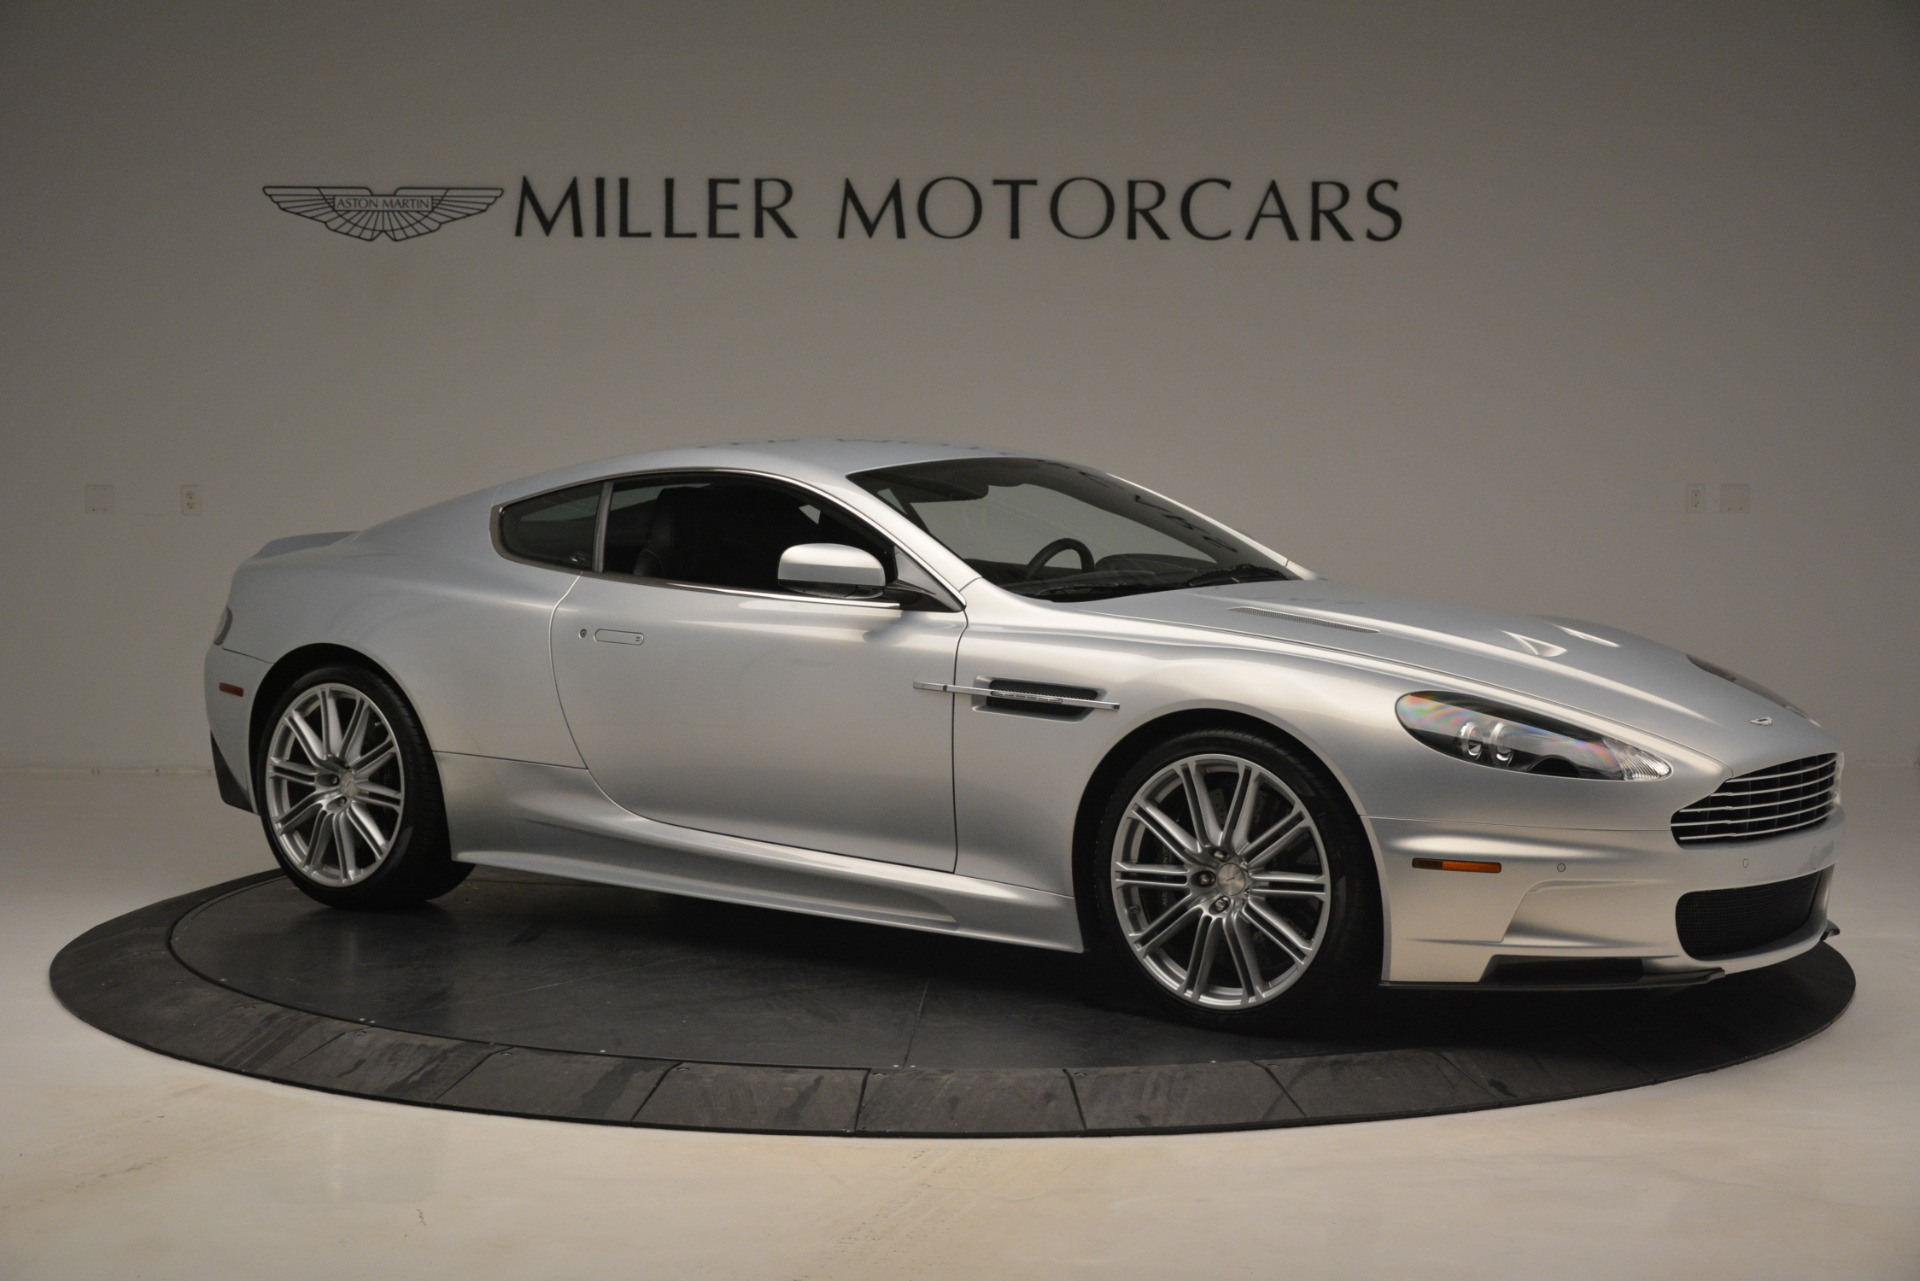 Used 2009 Aston Martin DBS Coupe For Sale In Westport, CT 3033_p10